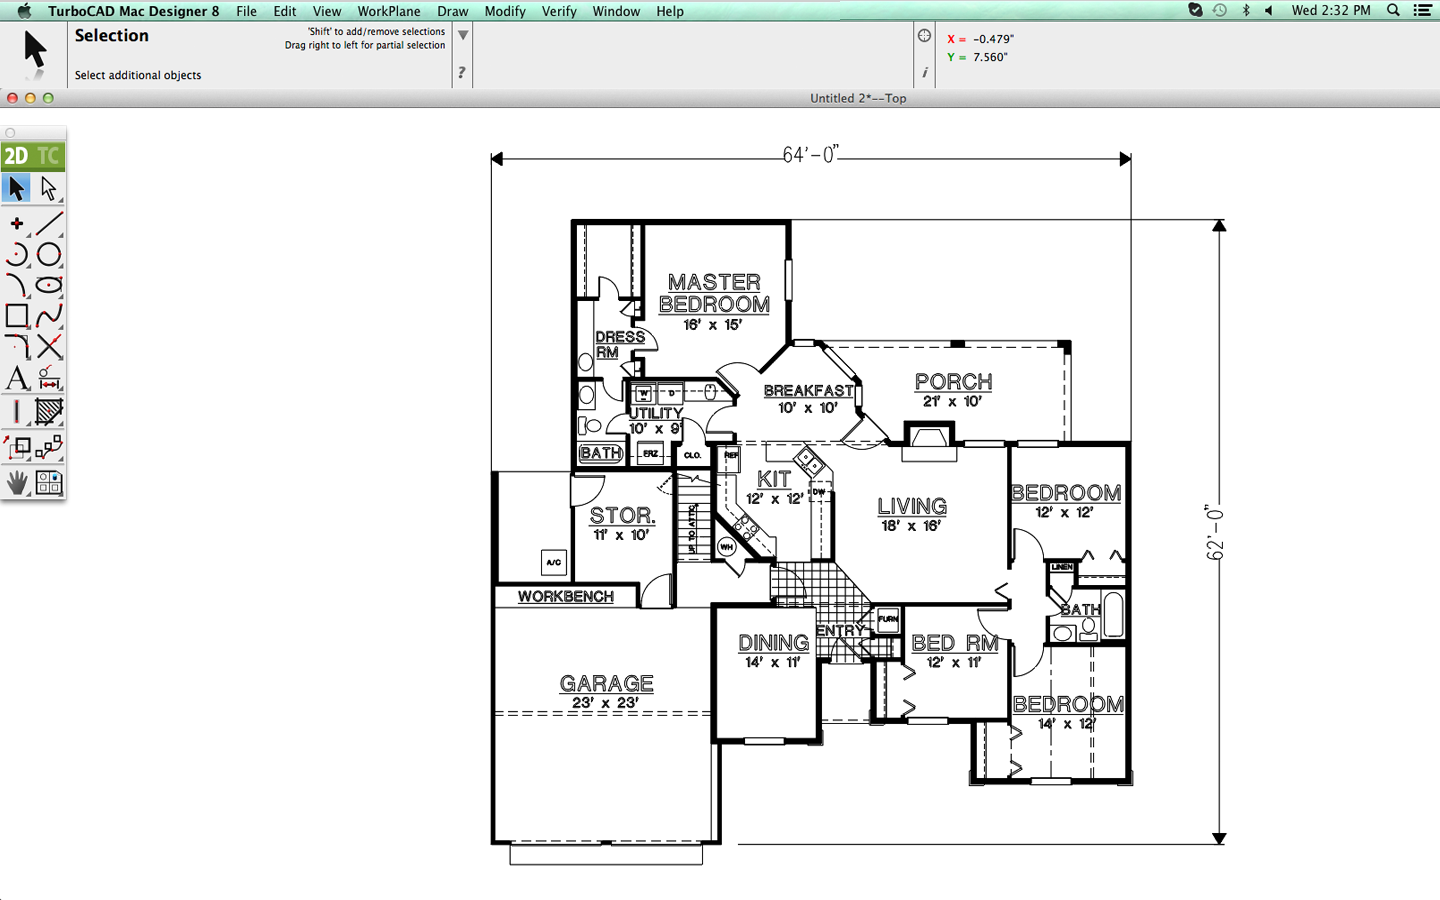 Turbocad for apple mac paulthecad for Home plan creator